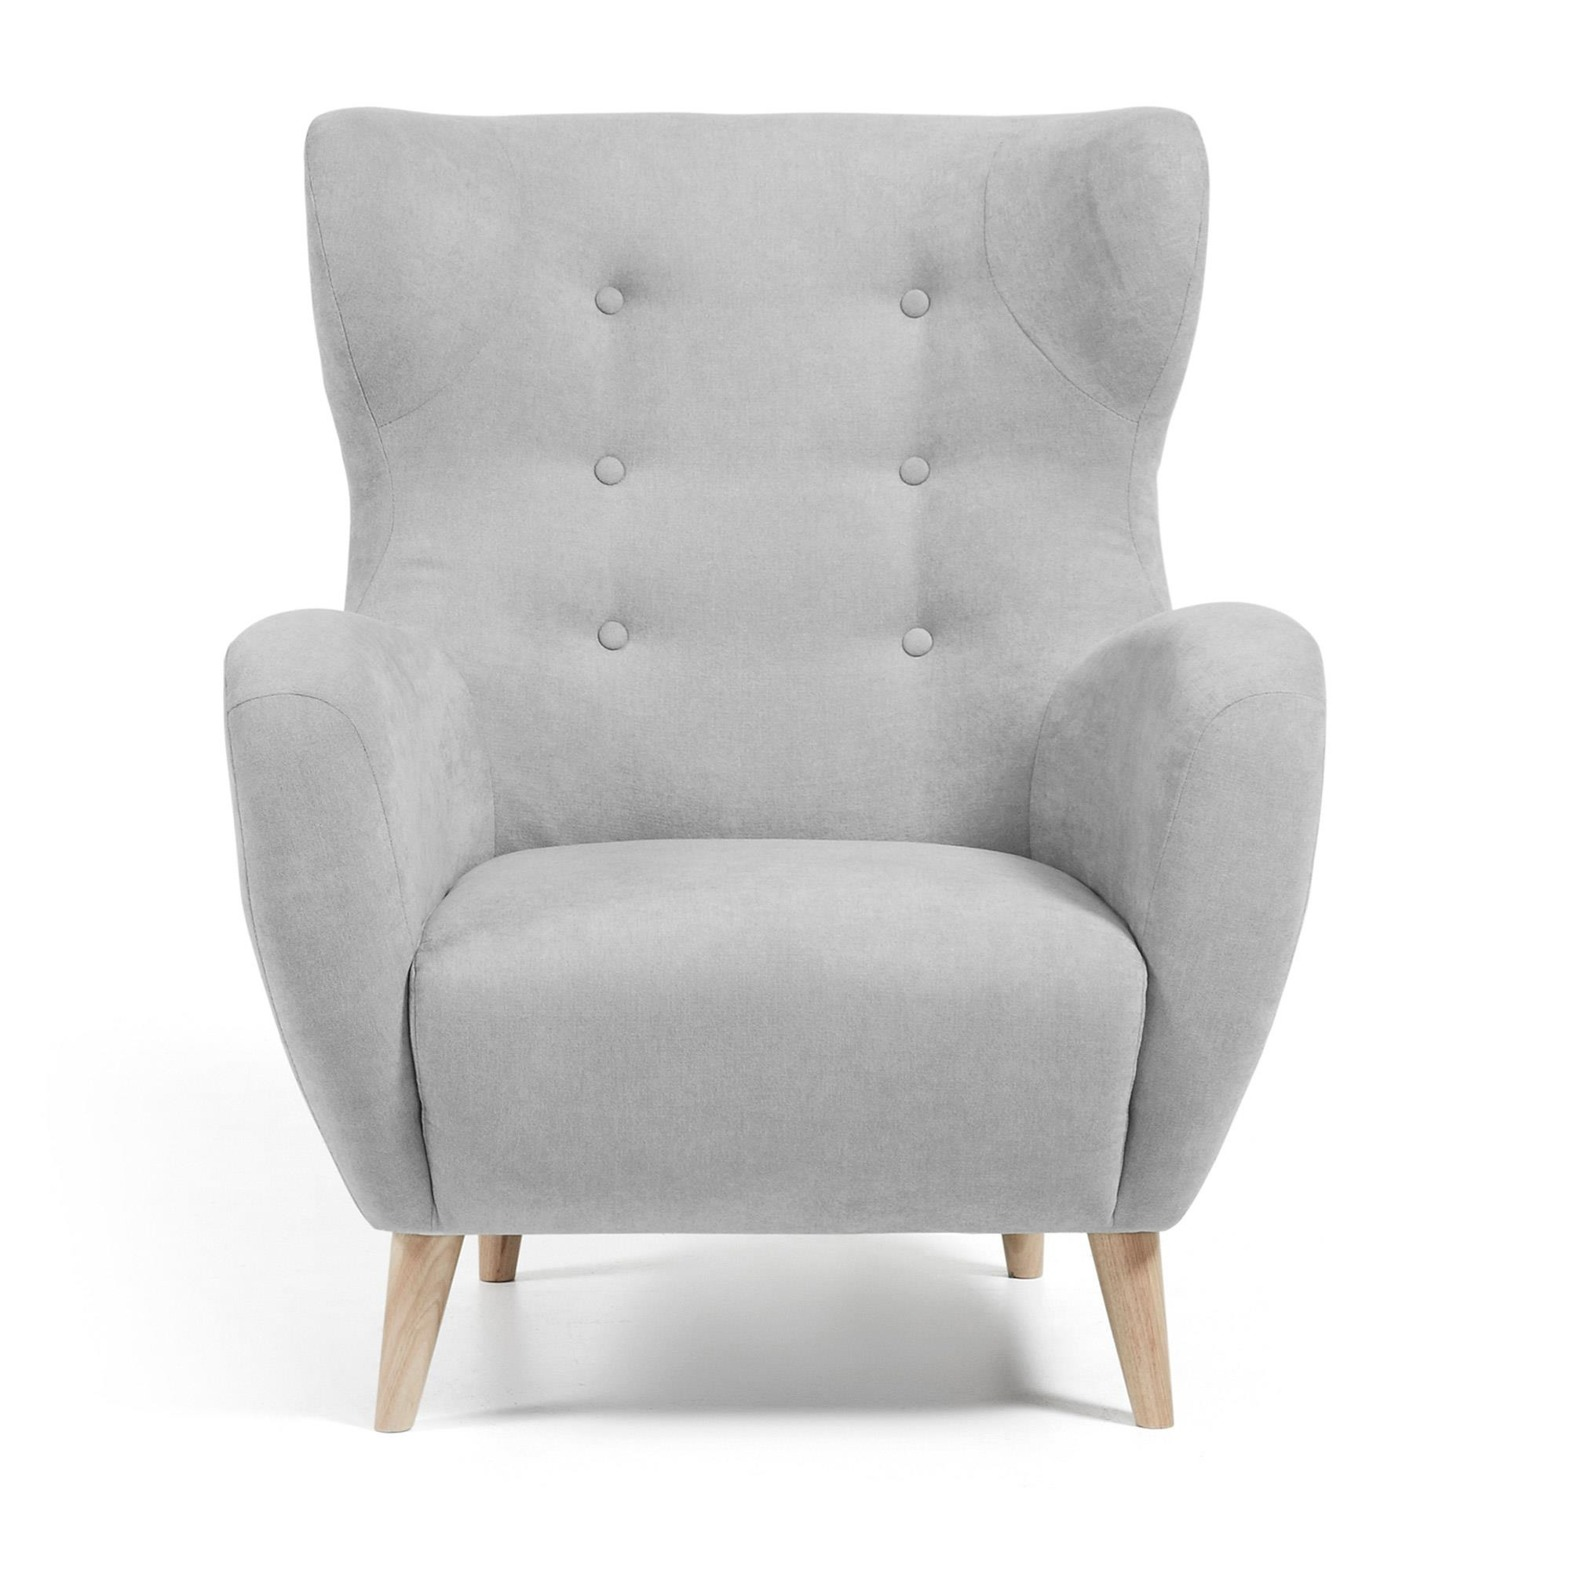 LaForma :: PASSO Armchair natural wood, fabric light gray